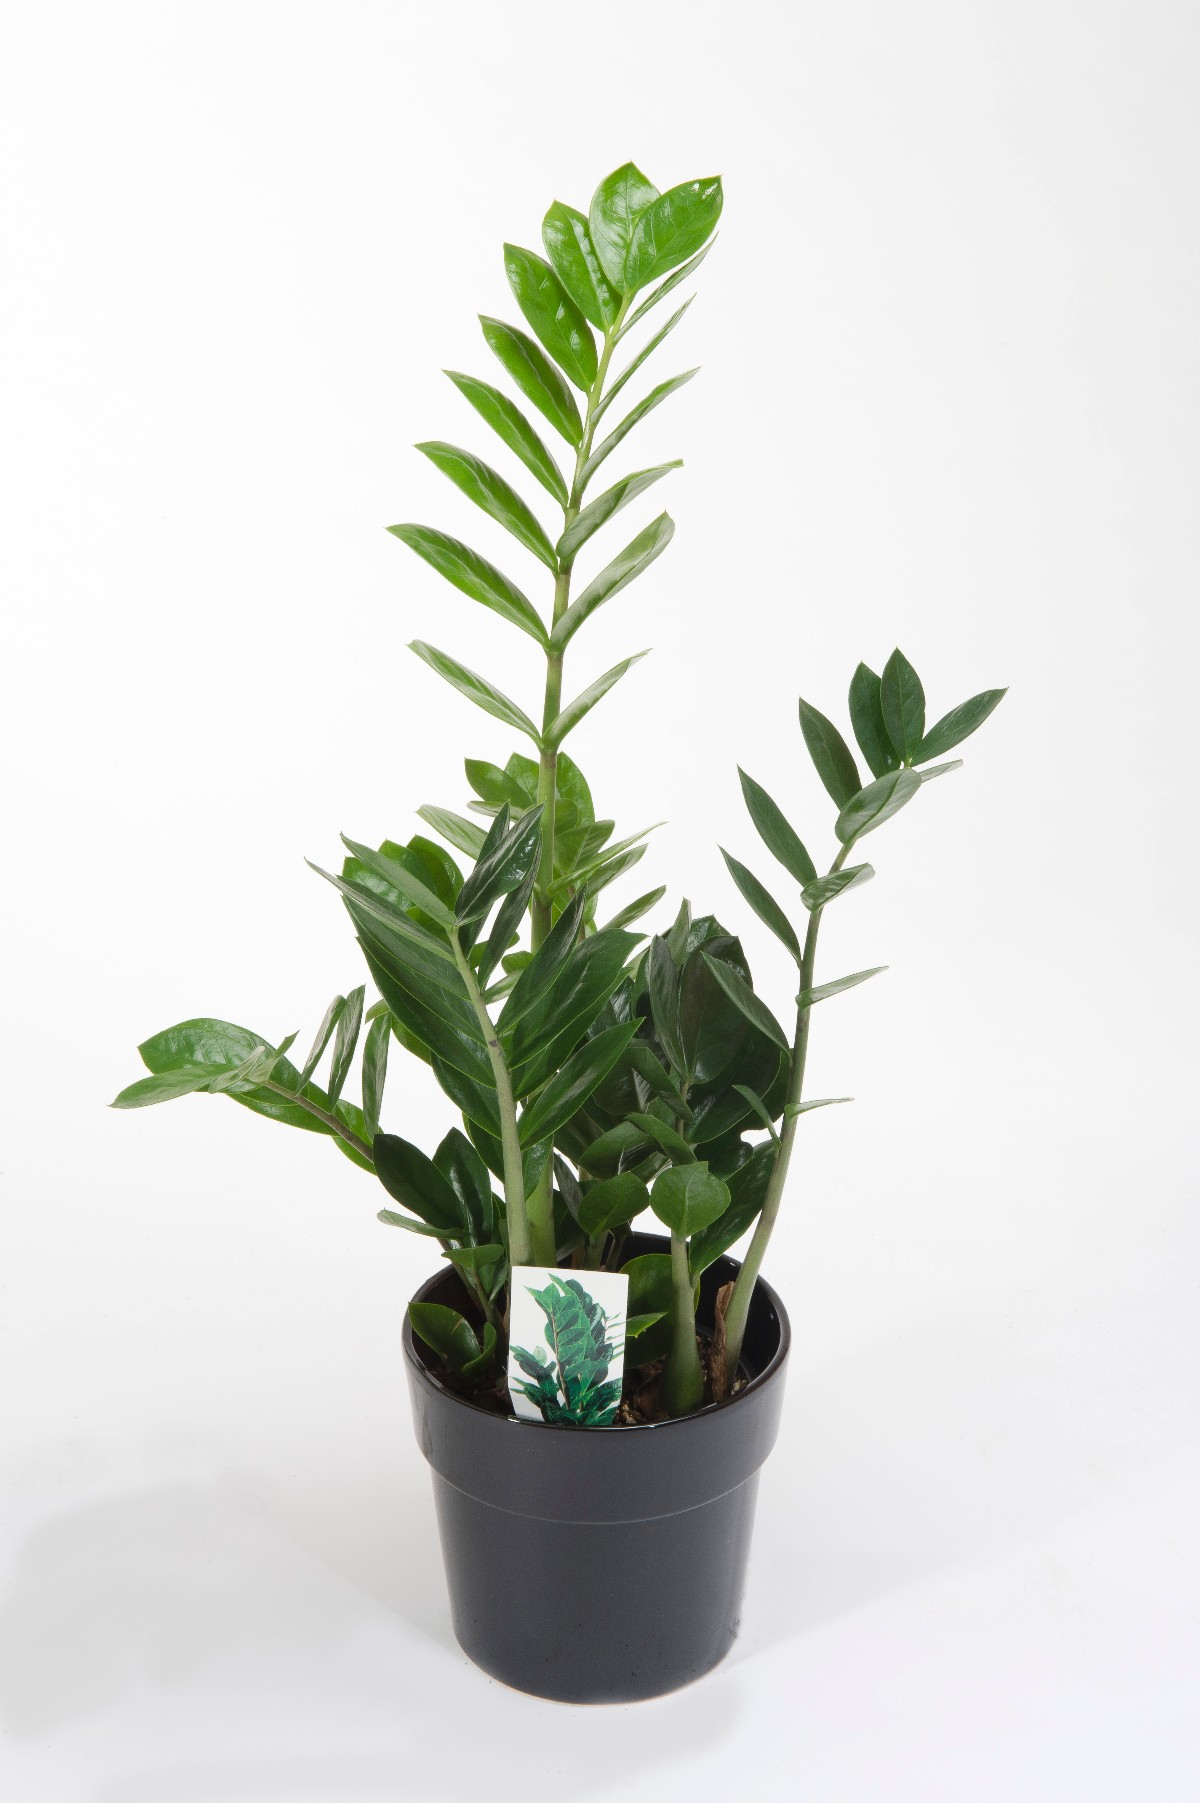 Gellerts the joy of plants air so pure for Plante zamioculcas